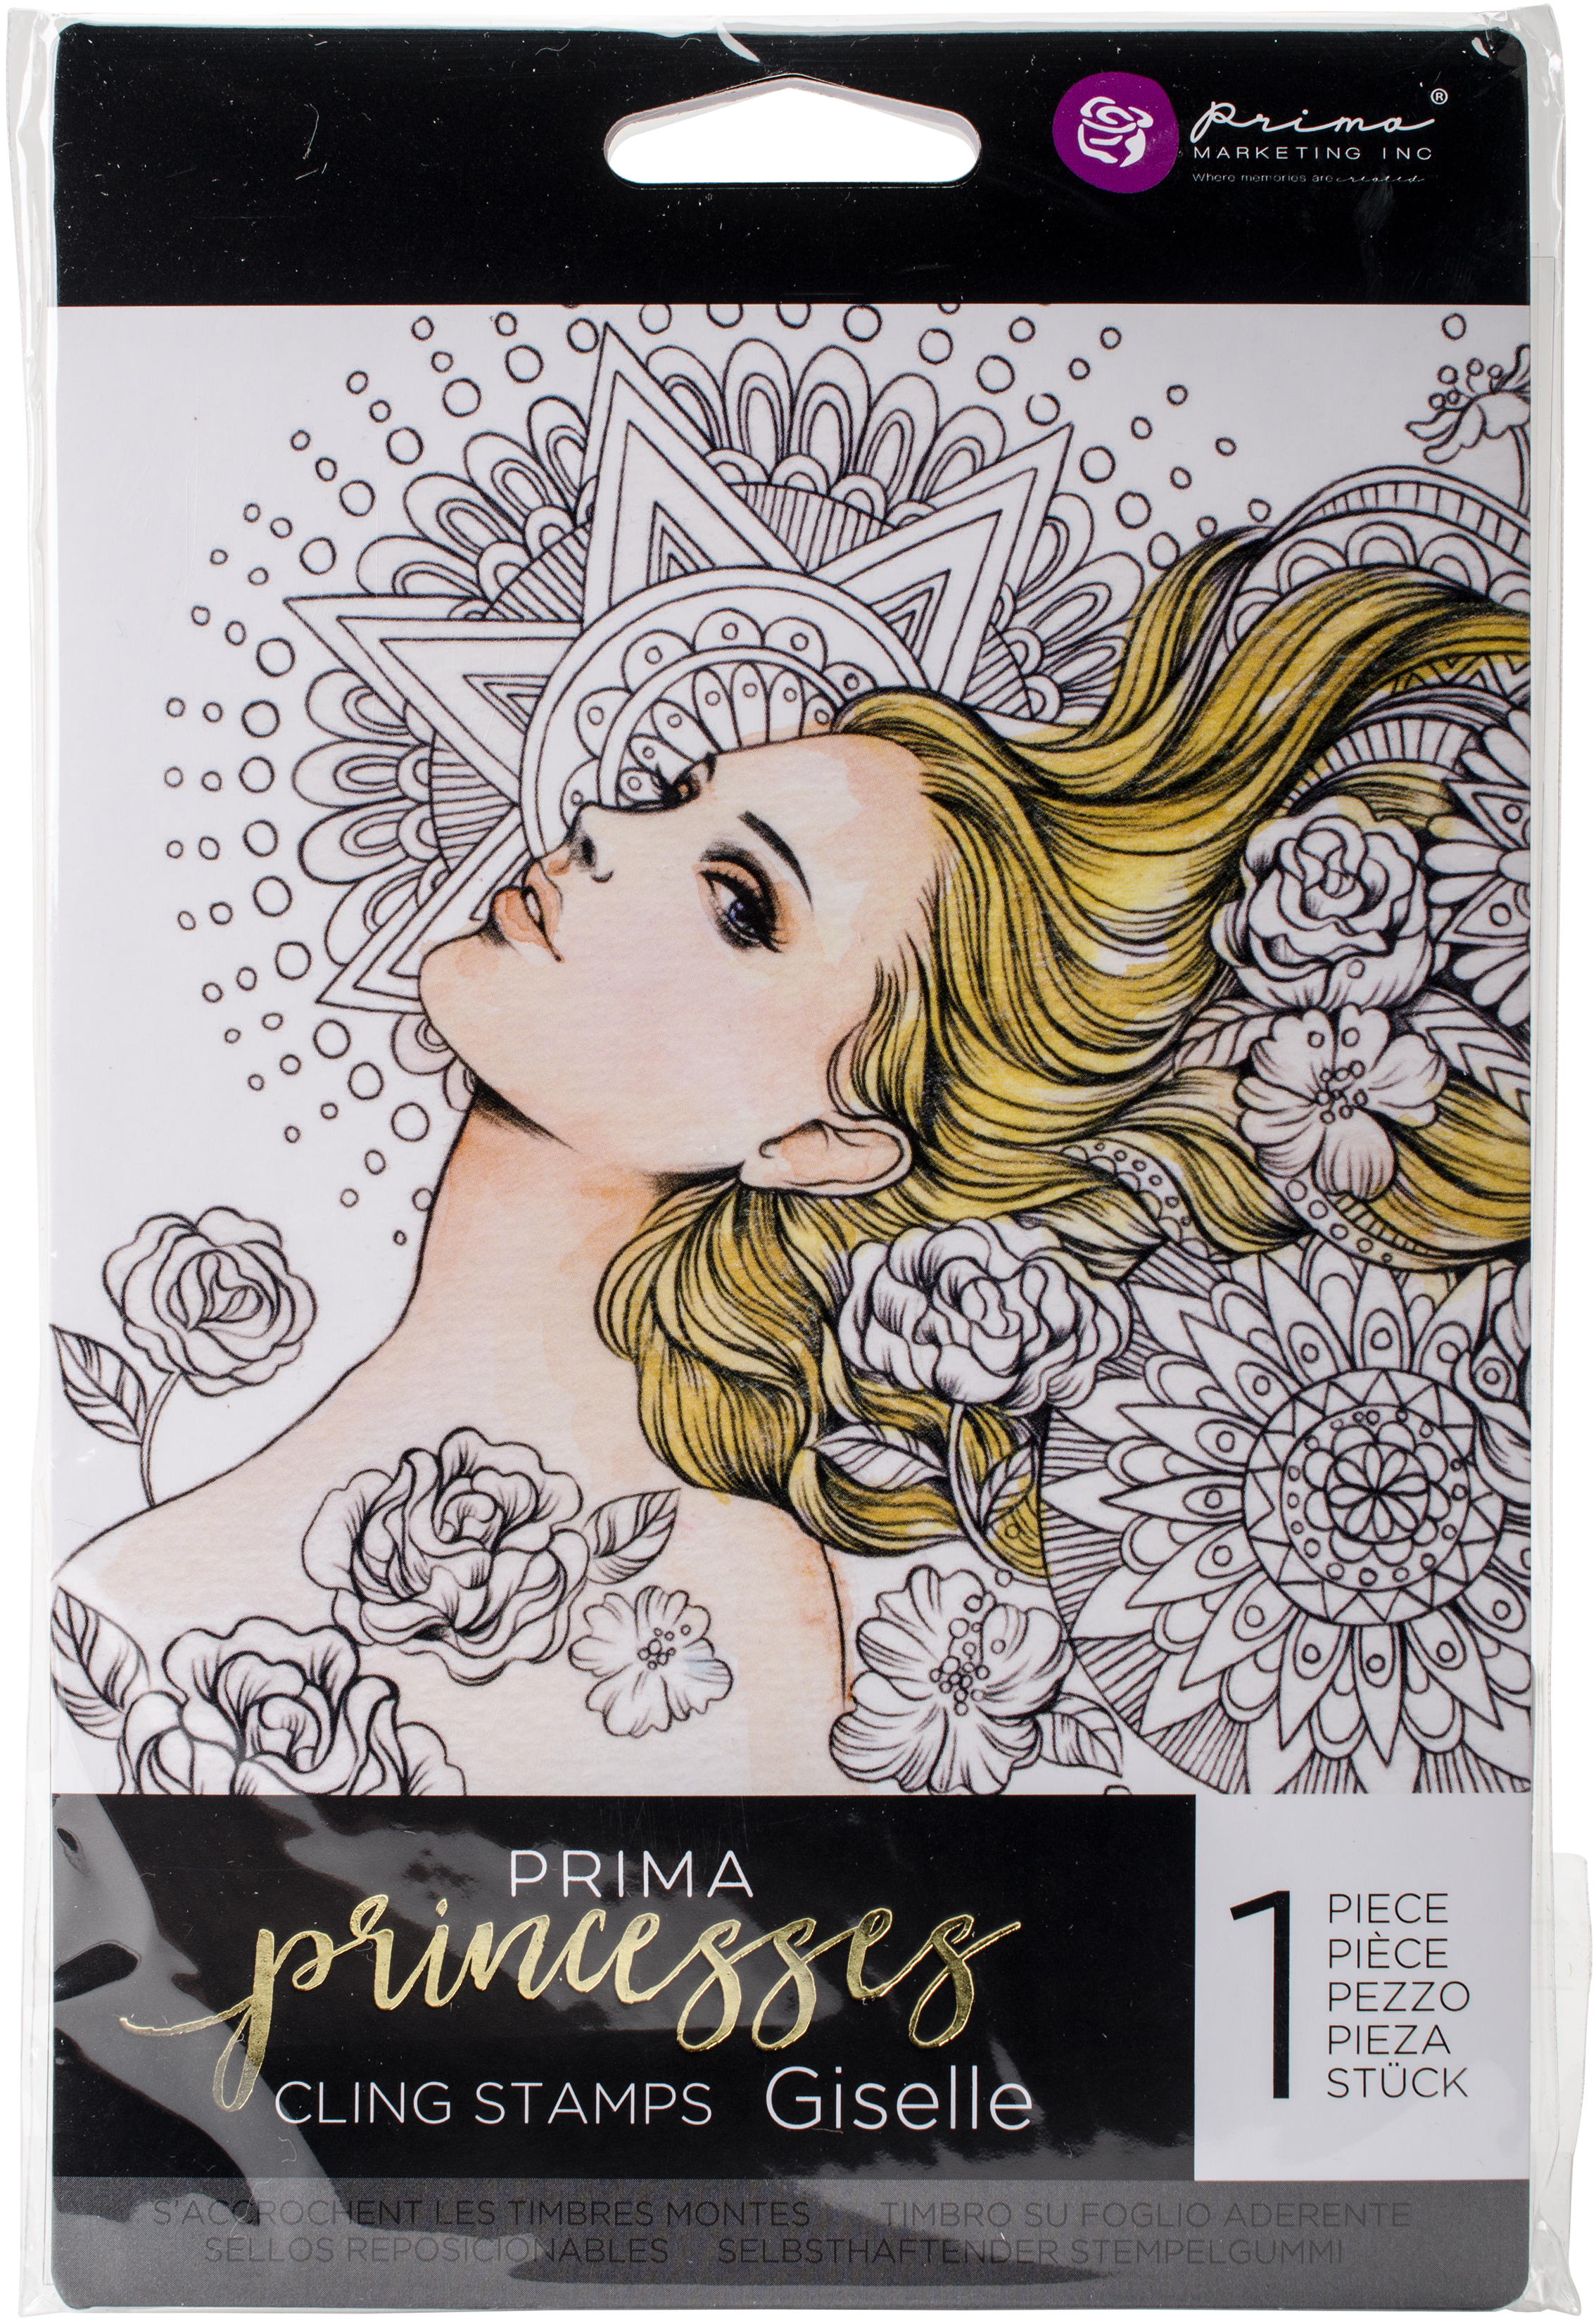 Prima Marketing Princesses Cling Stamp 5X7-Giselle